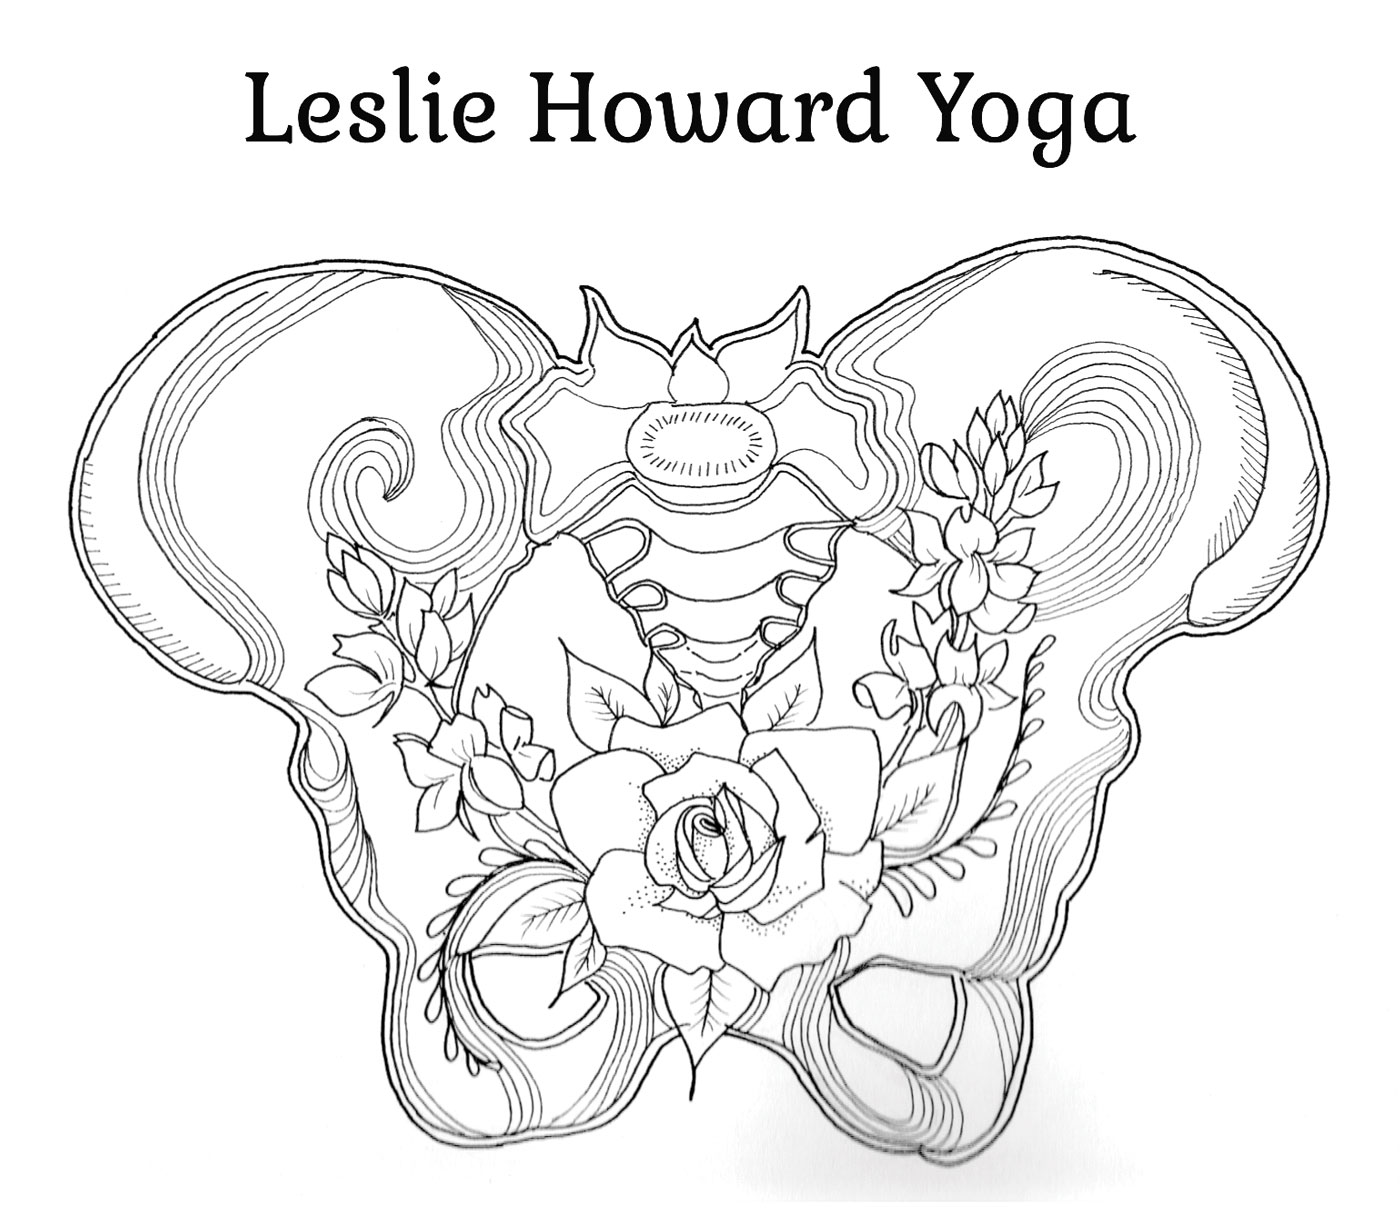 Leslie-Howard-Yoga-Logo.jpg